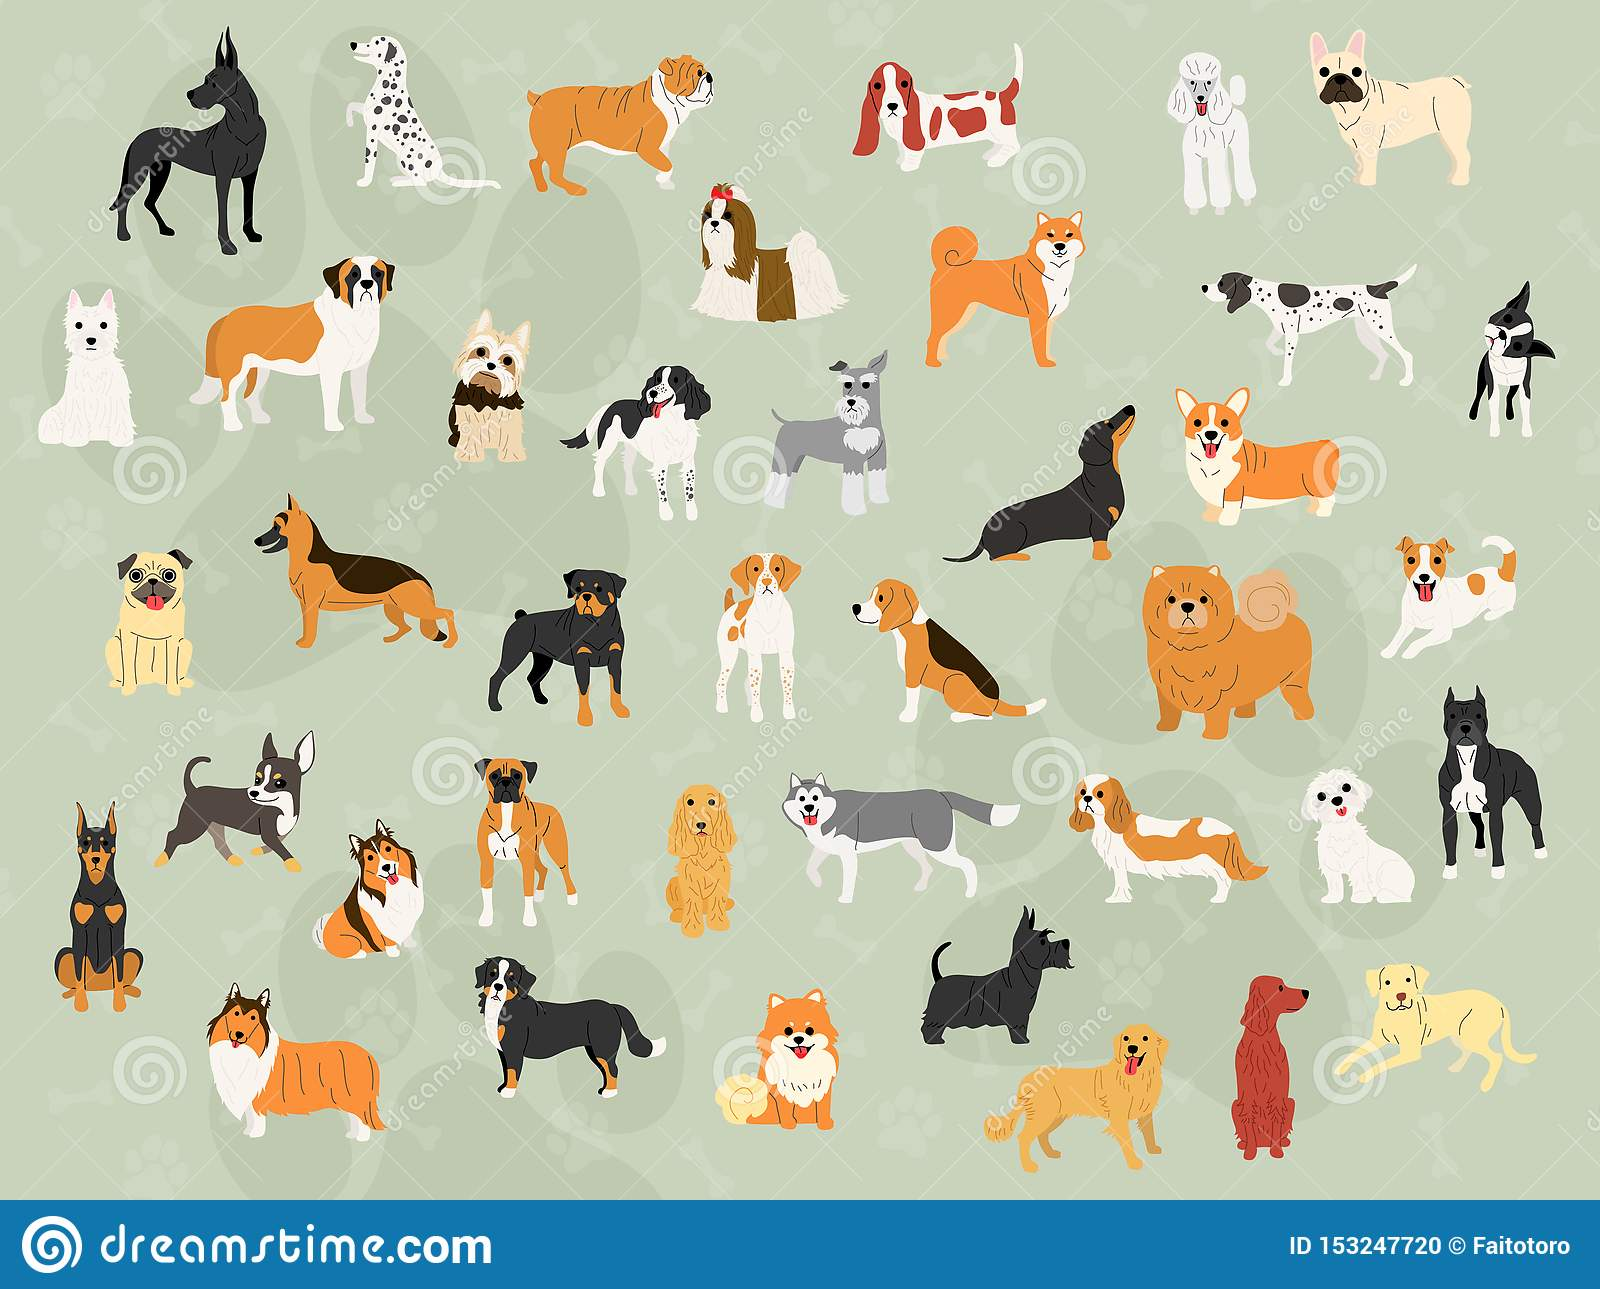 Cute Dogs In Action Wallpaper Design Stock Vector Illustration Of Exercise Bulldog 153247720